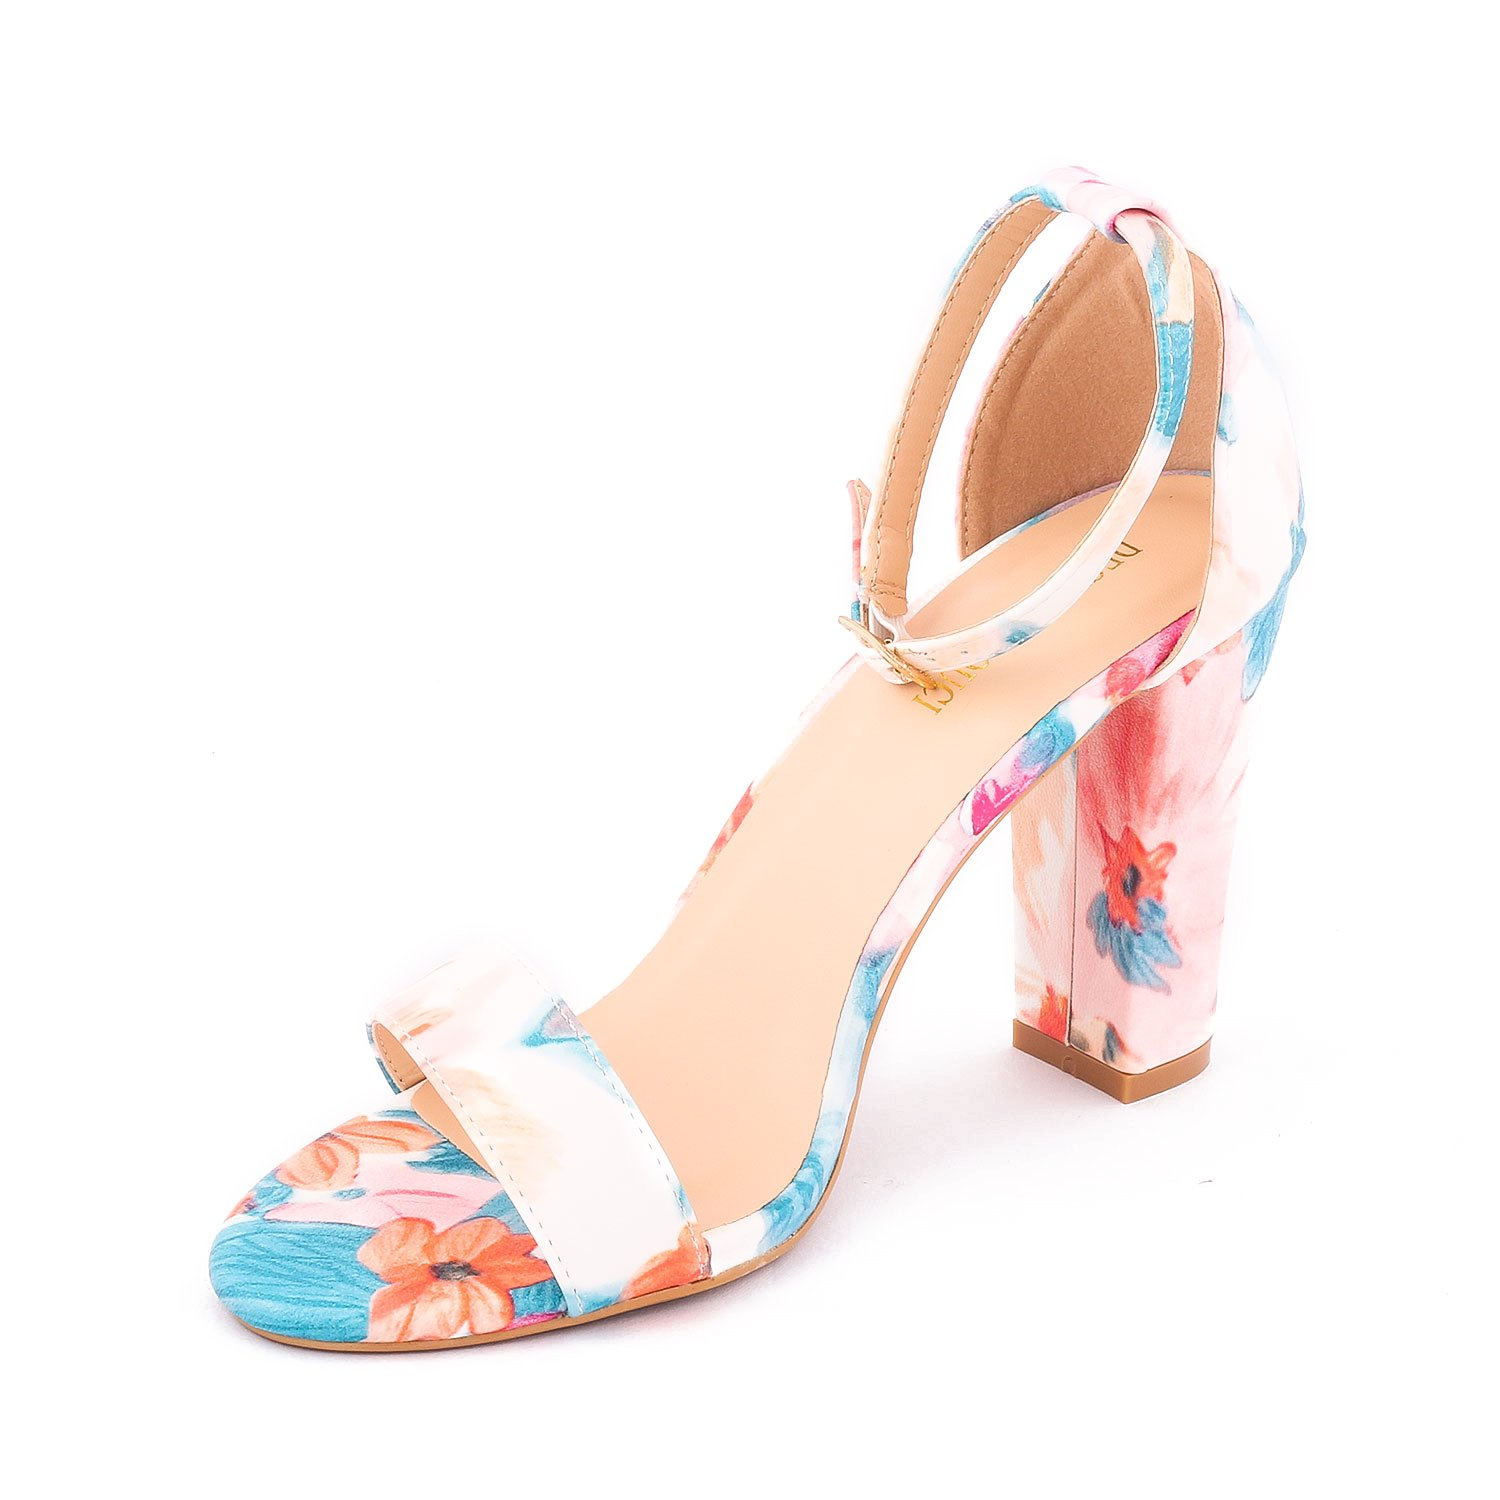 43c01a37318 Dech Barrouci Colourful High Heels Comfortable Fit Ladies Sandals Girls  Sandals Party Wear Classy Attractive Elegant Look Hot Heels for Women and  Girls